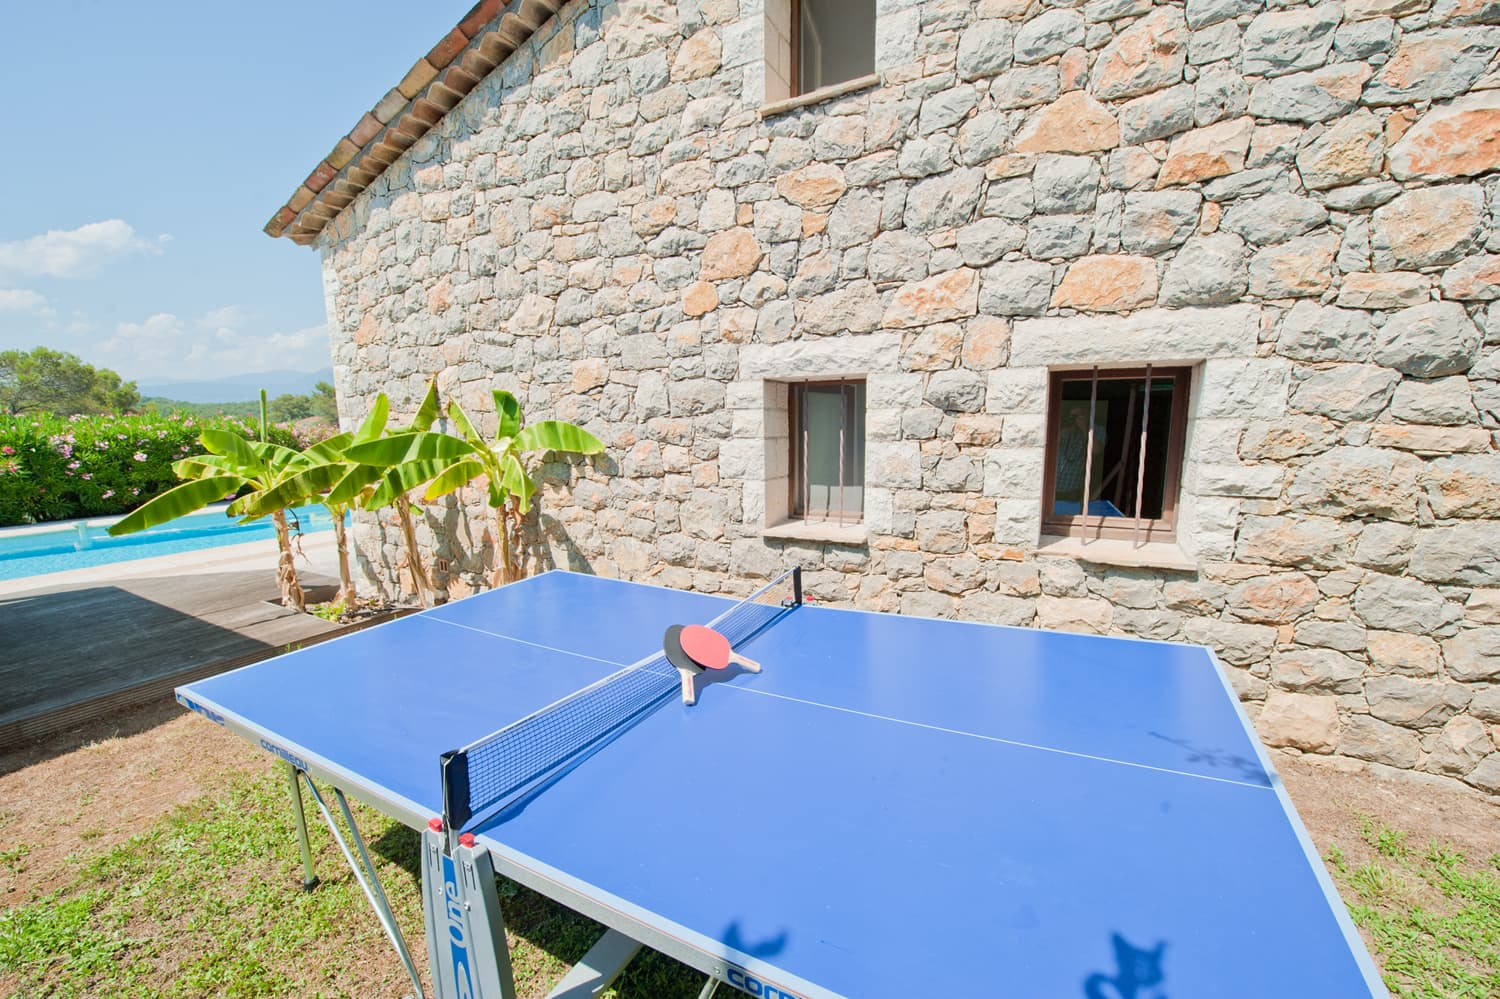 Table tennis in garden